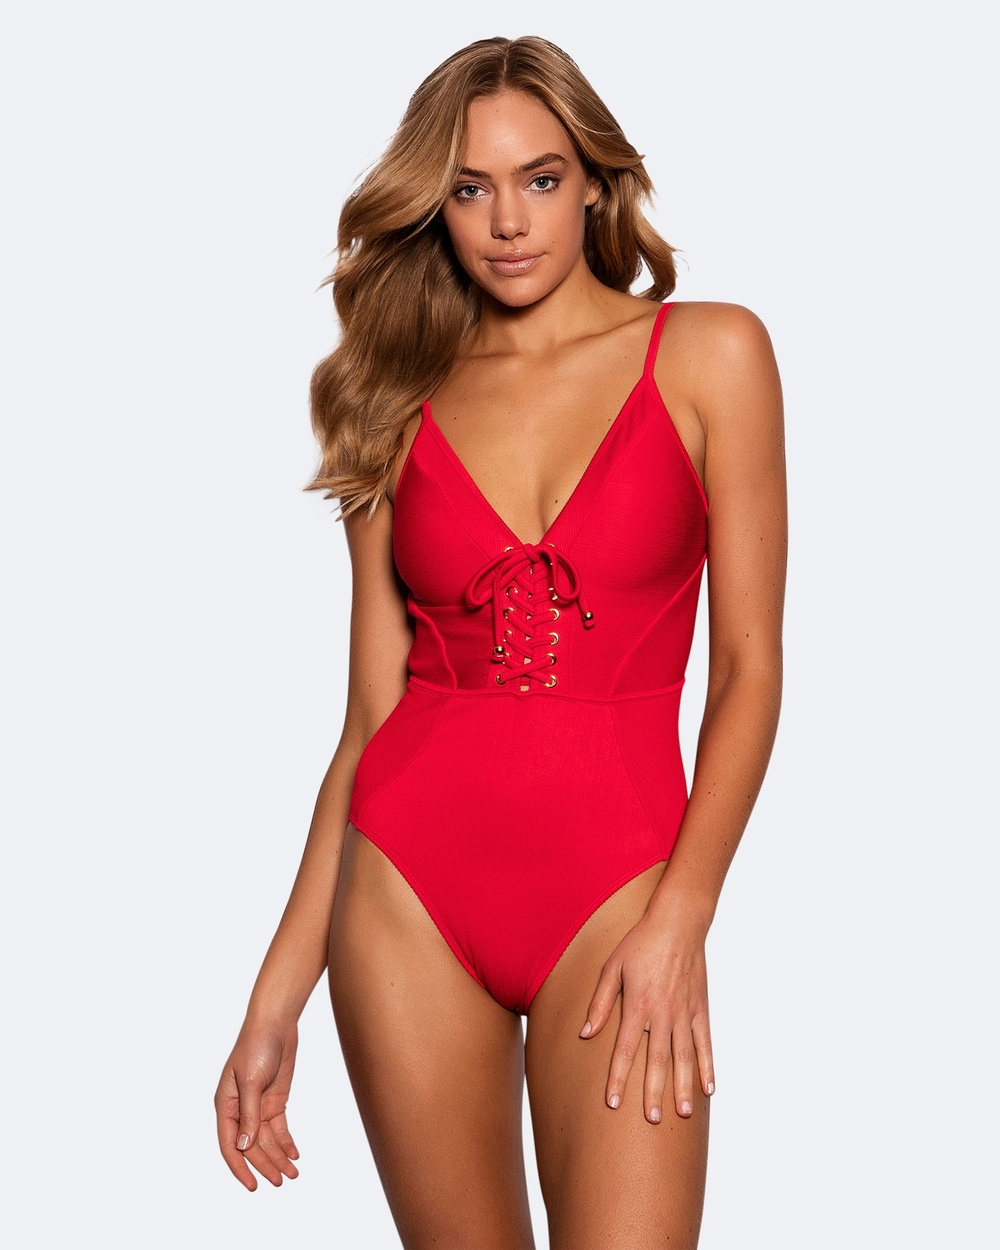 Bras N Things Ribb Lace Up One Piece One-Piece / Swimsuit Red Ribb Lace Up One Piece